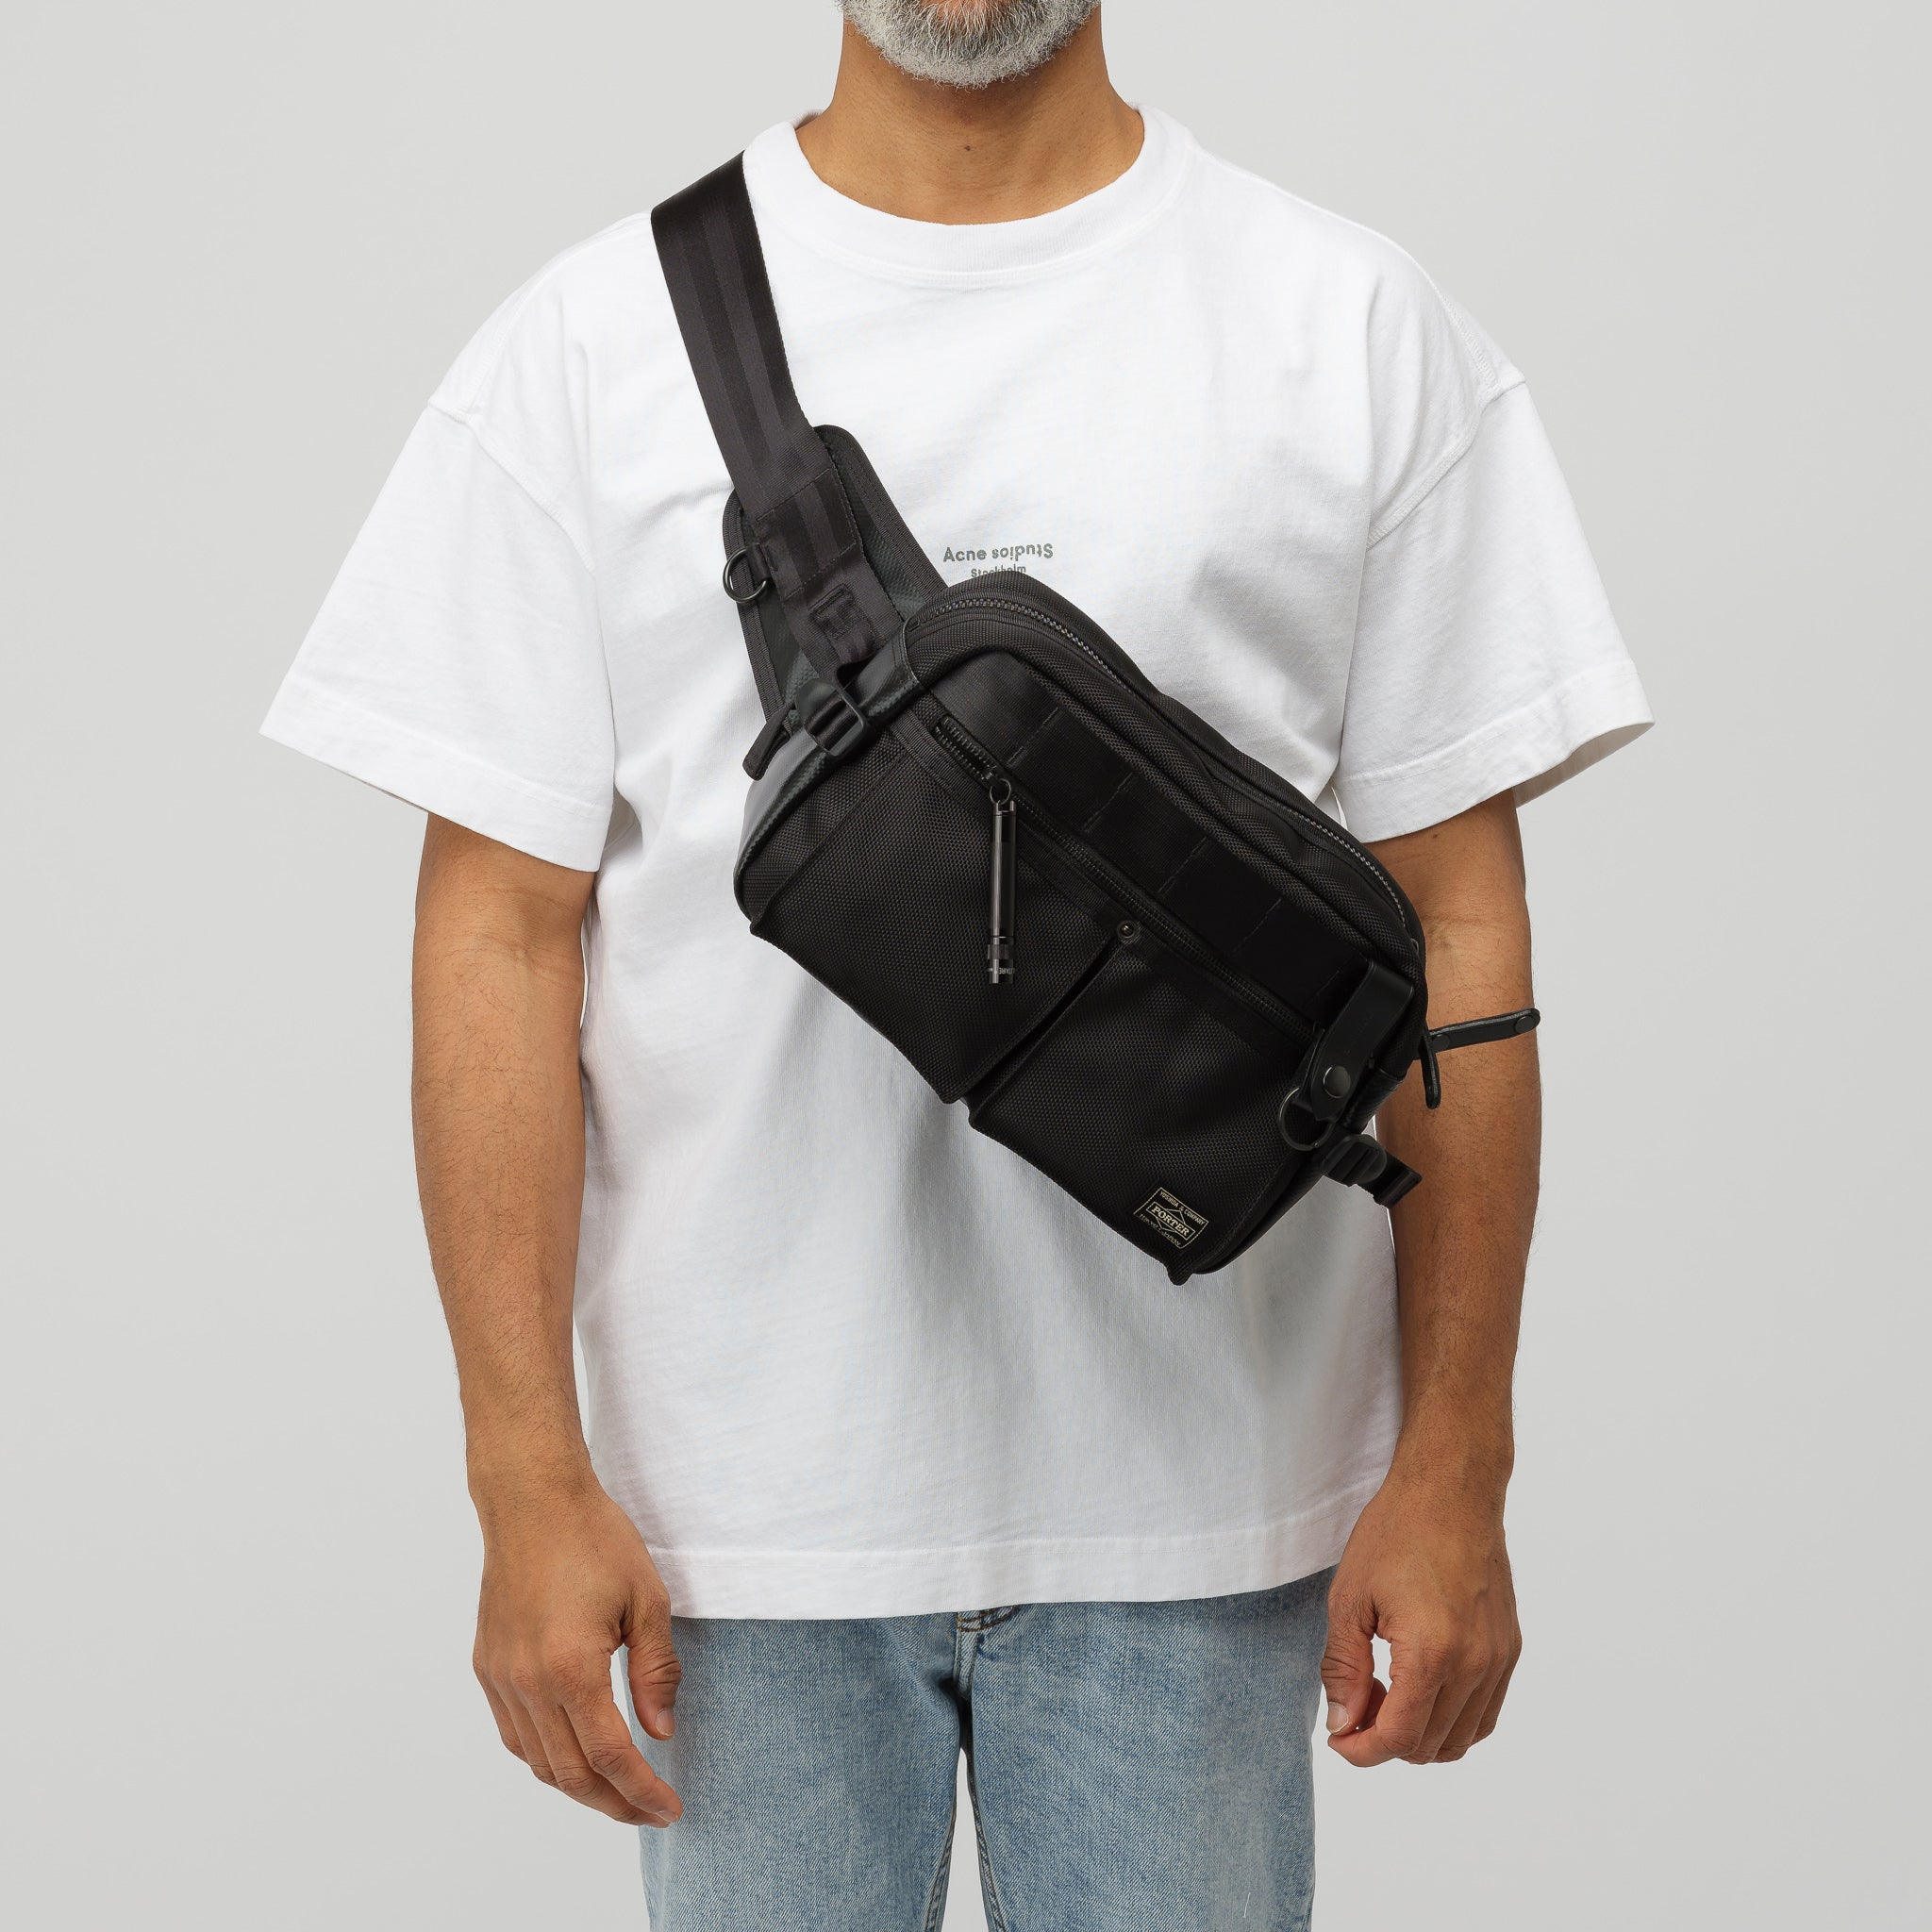 HEAT Waist Bag in Black